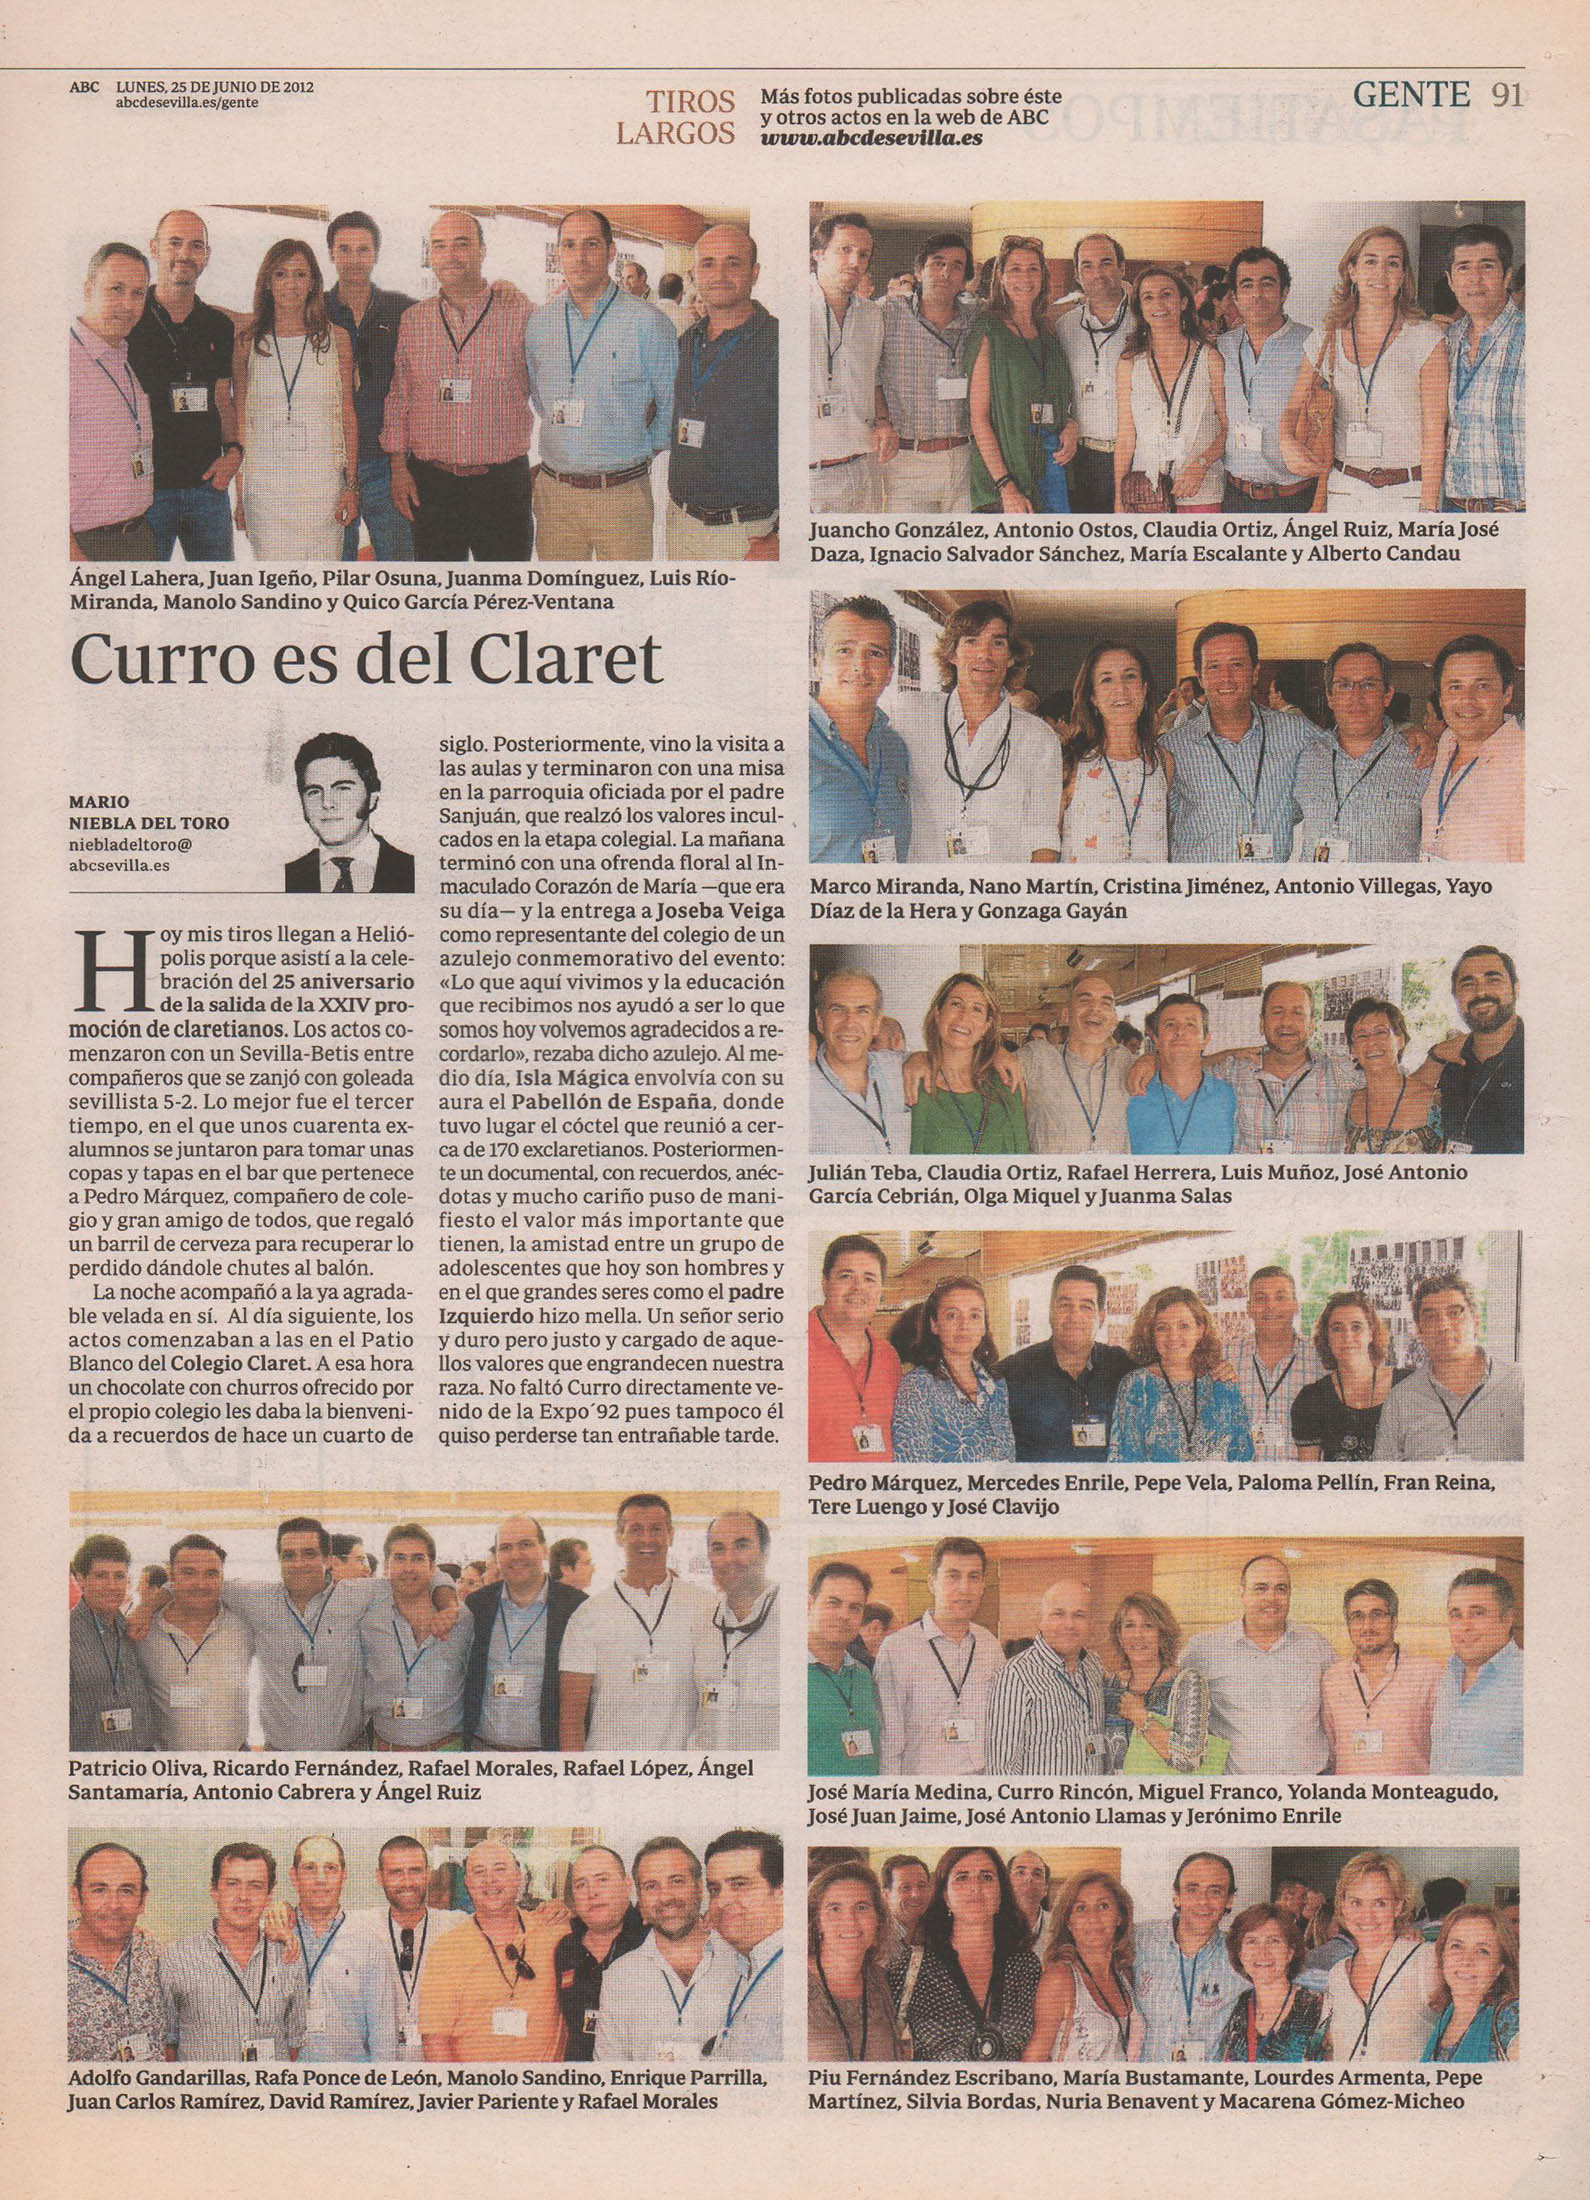 Curro es del Claret | ABC de Sevilla | 25 jun 2012